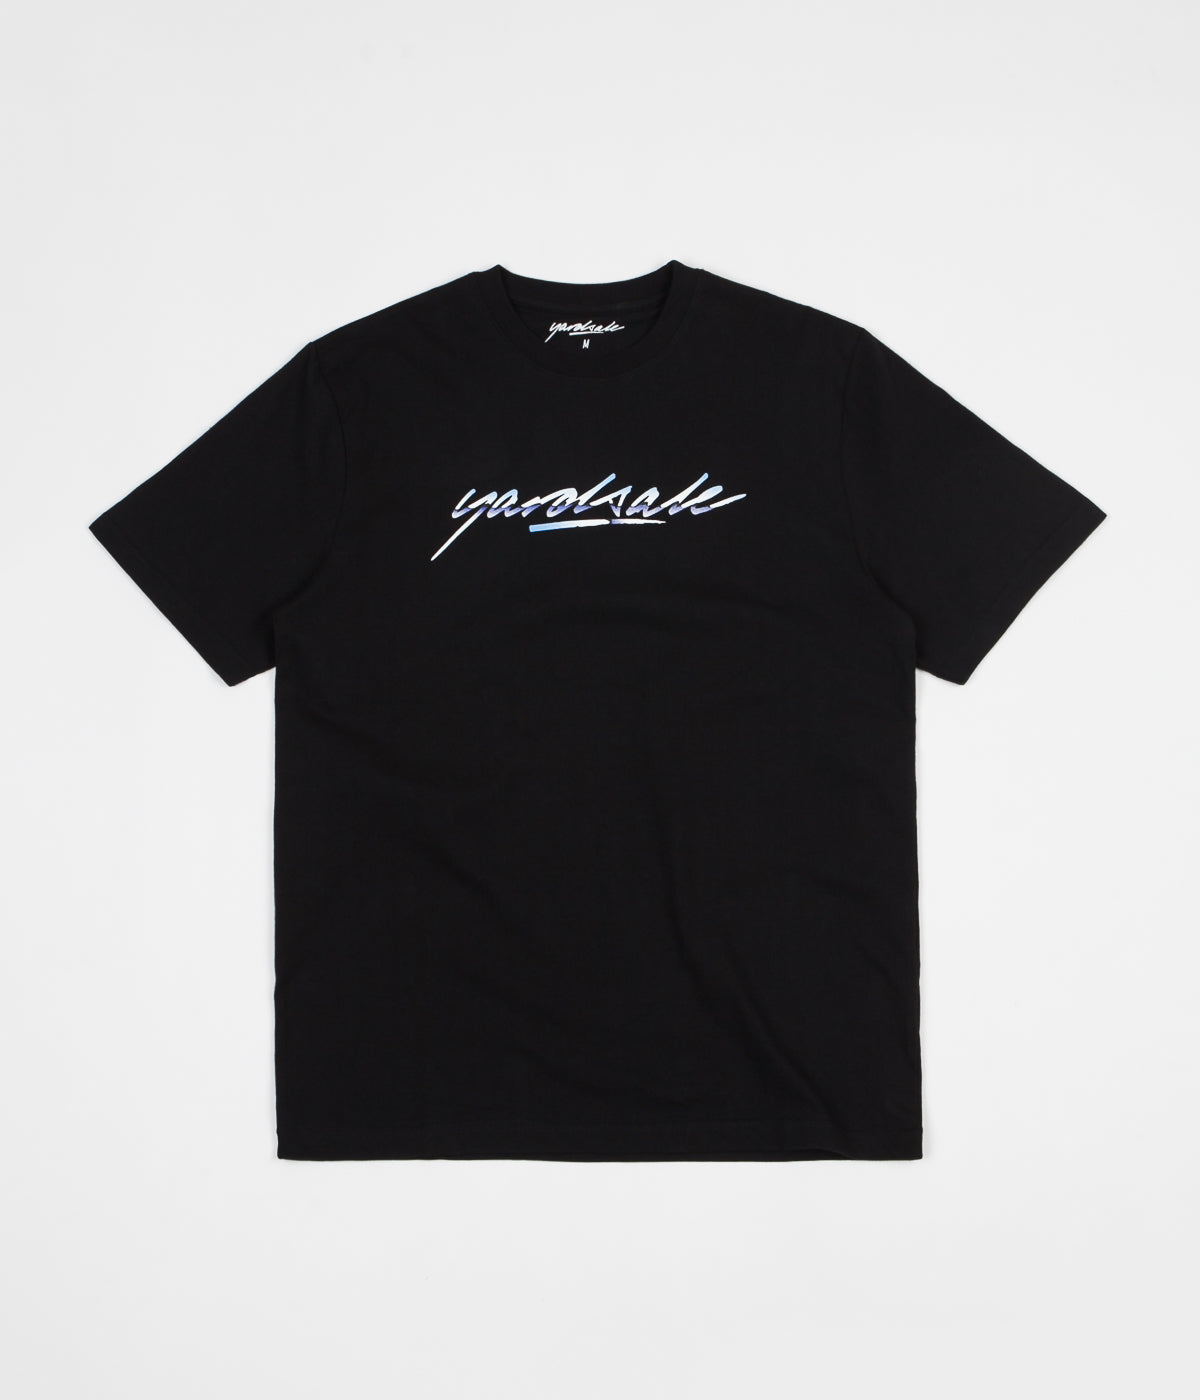 Yardsale Genesis T-Shirt - Black